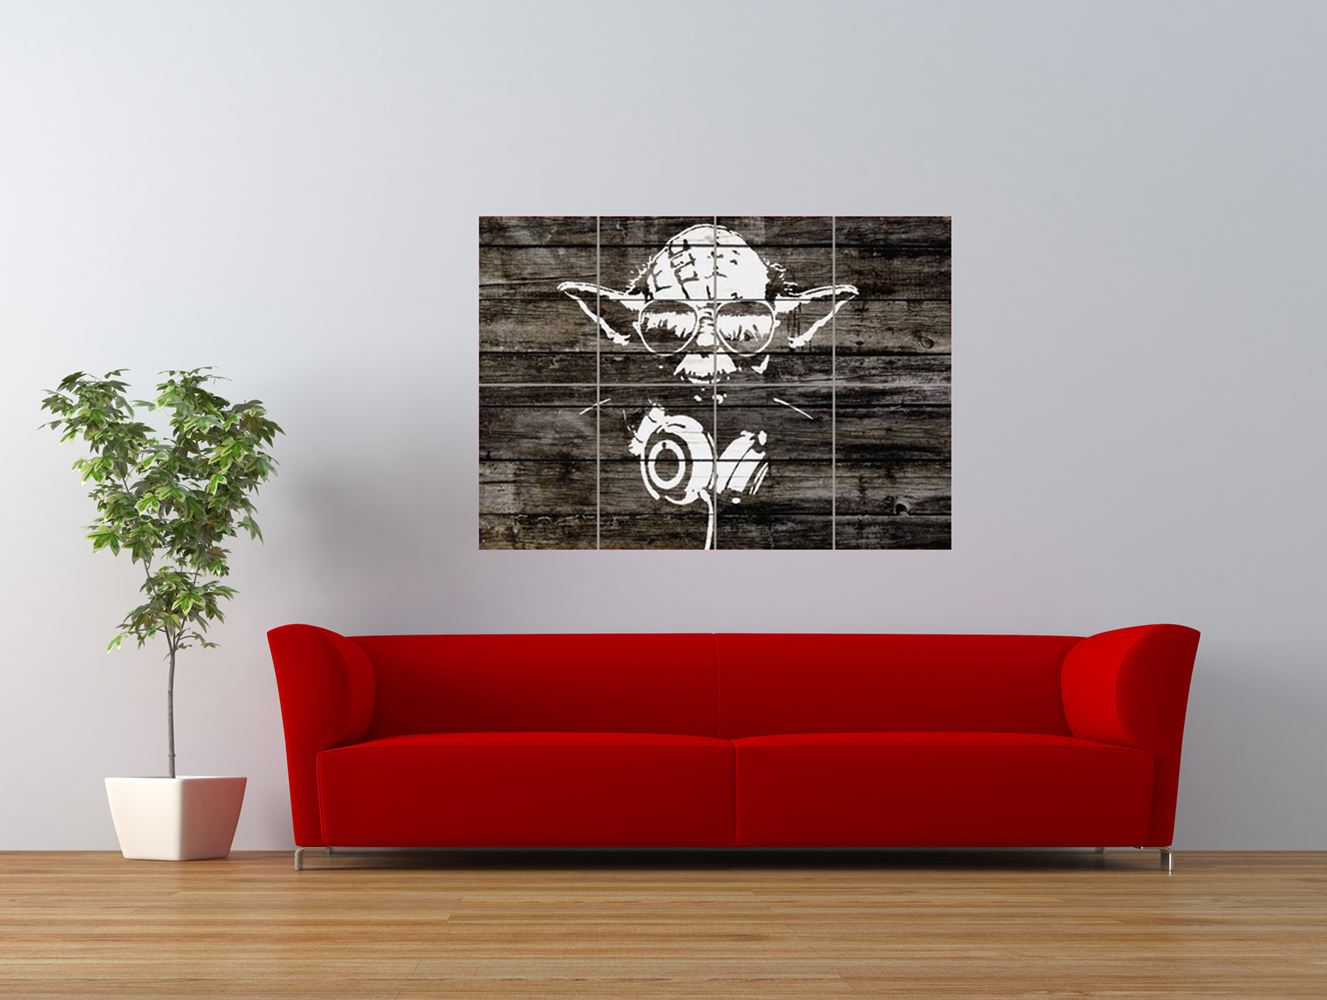 star wars graffiti yoda stencil style giant art print panel poster nor0547 ebay. Black Bedroom Furniture Sets. Home Design Ideas